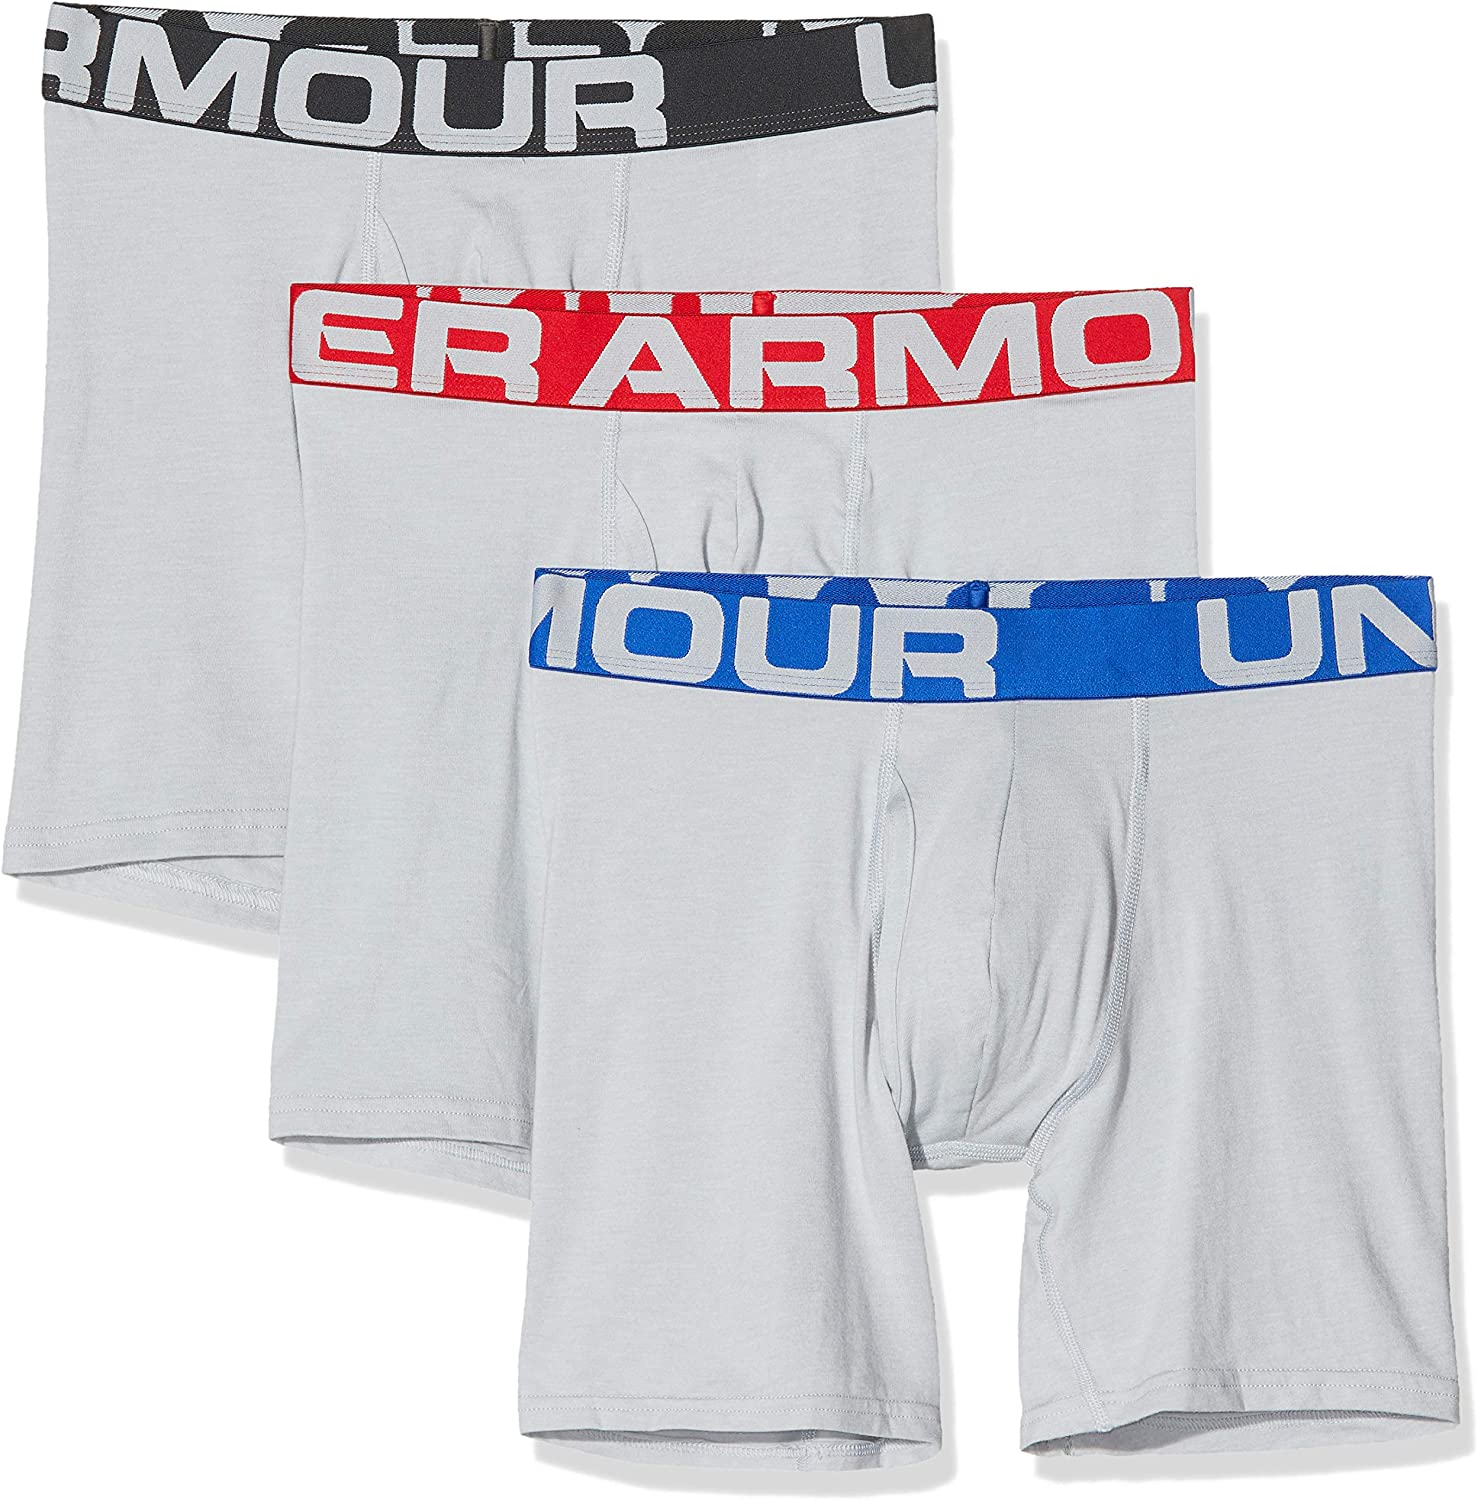 Under Armour Men's Charged Cotton 6-inch Boxerjock 3-Pack: Clothing